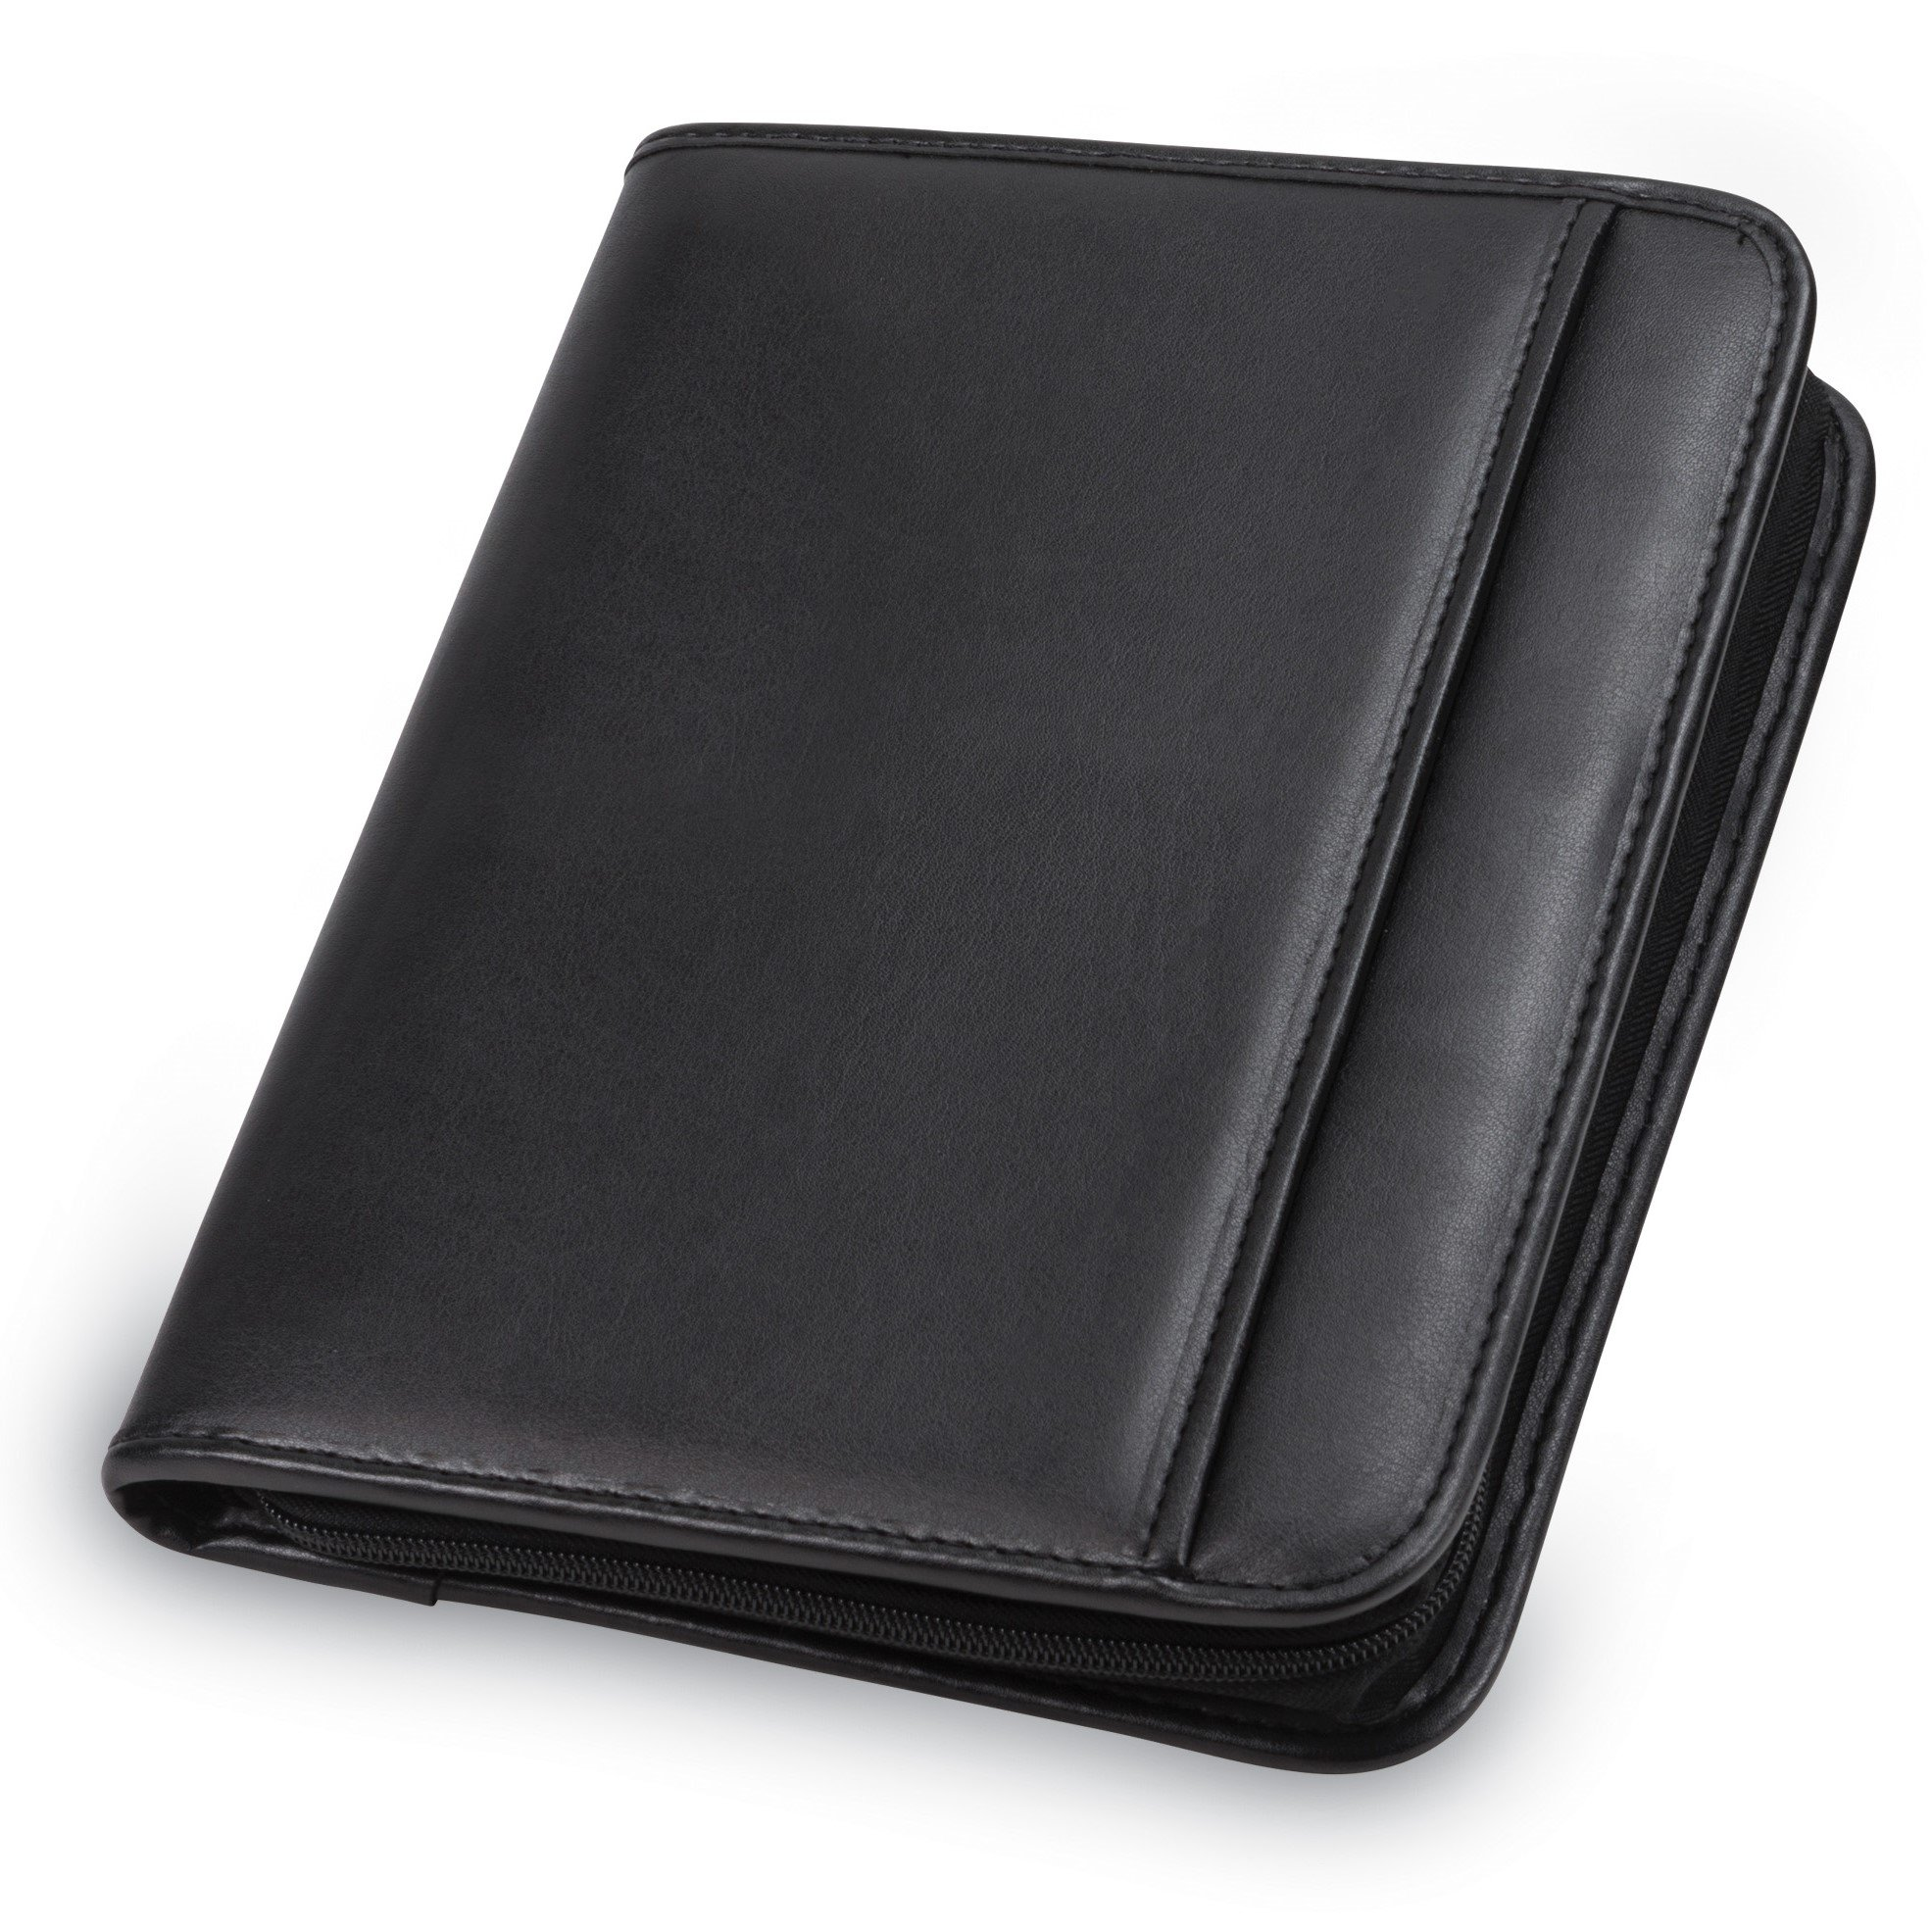 Samsill 70821 Professional Padfolio - Resume Portfolio / Business Portfolio with Secure Zippered Closure, Junior Size, 10.1-inch Tablet Pocket, Expandable Document Organizer & 7''x10'' Writing Pad